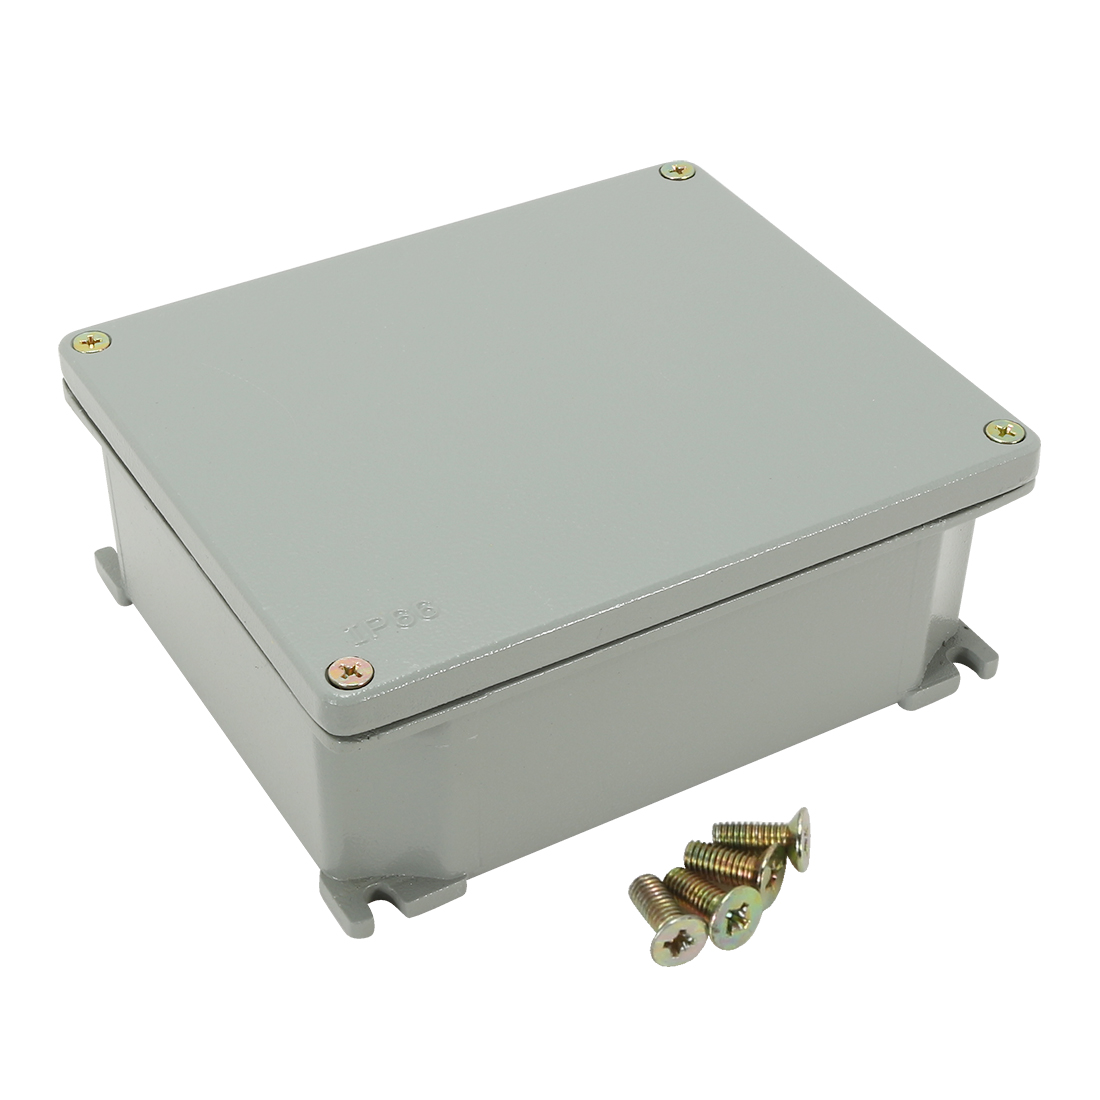 "6.3""x5.3""x2.3""(160mmx135mmx60mm) Aluminum Junction Box Universal Electric Project Enclosure"